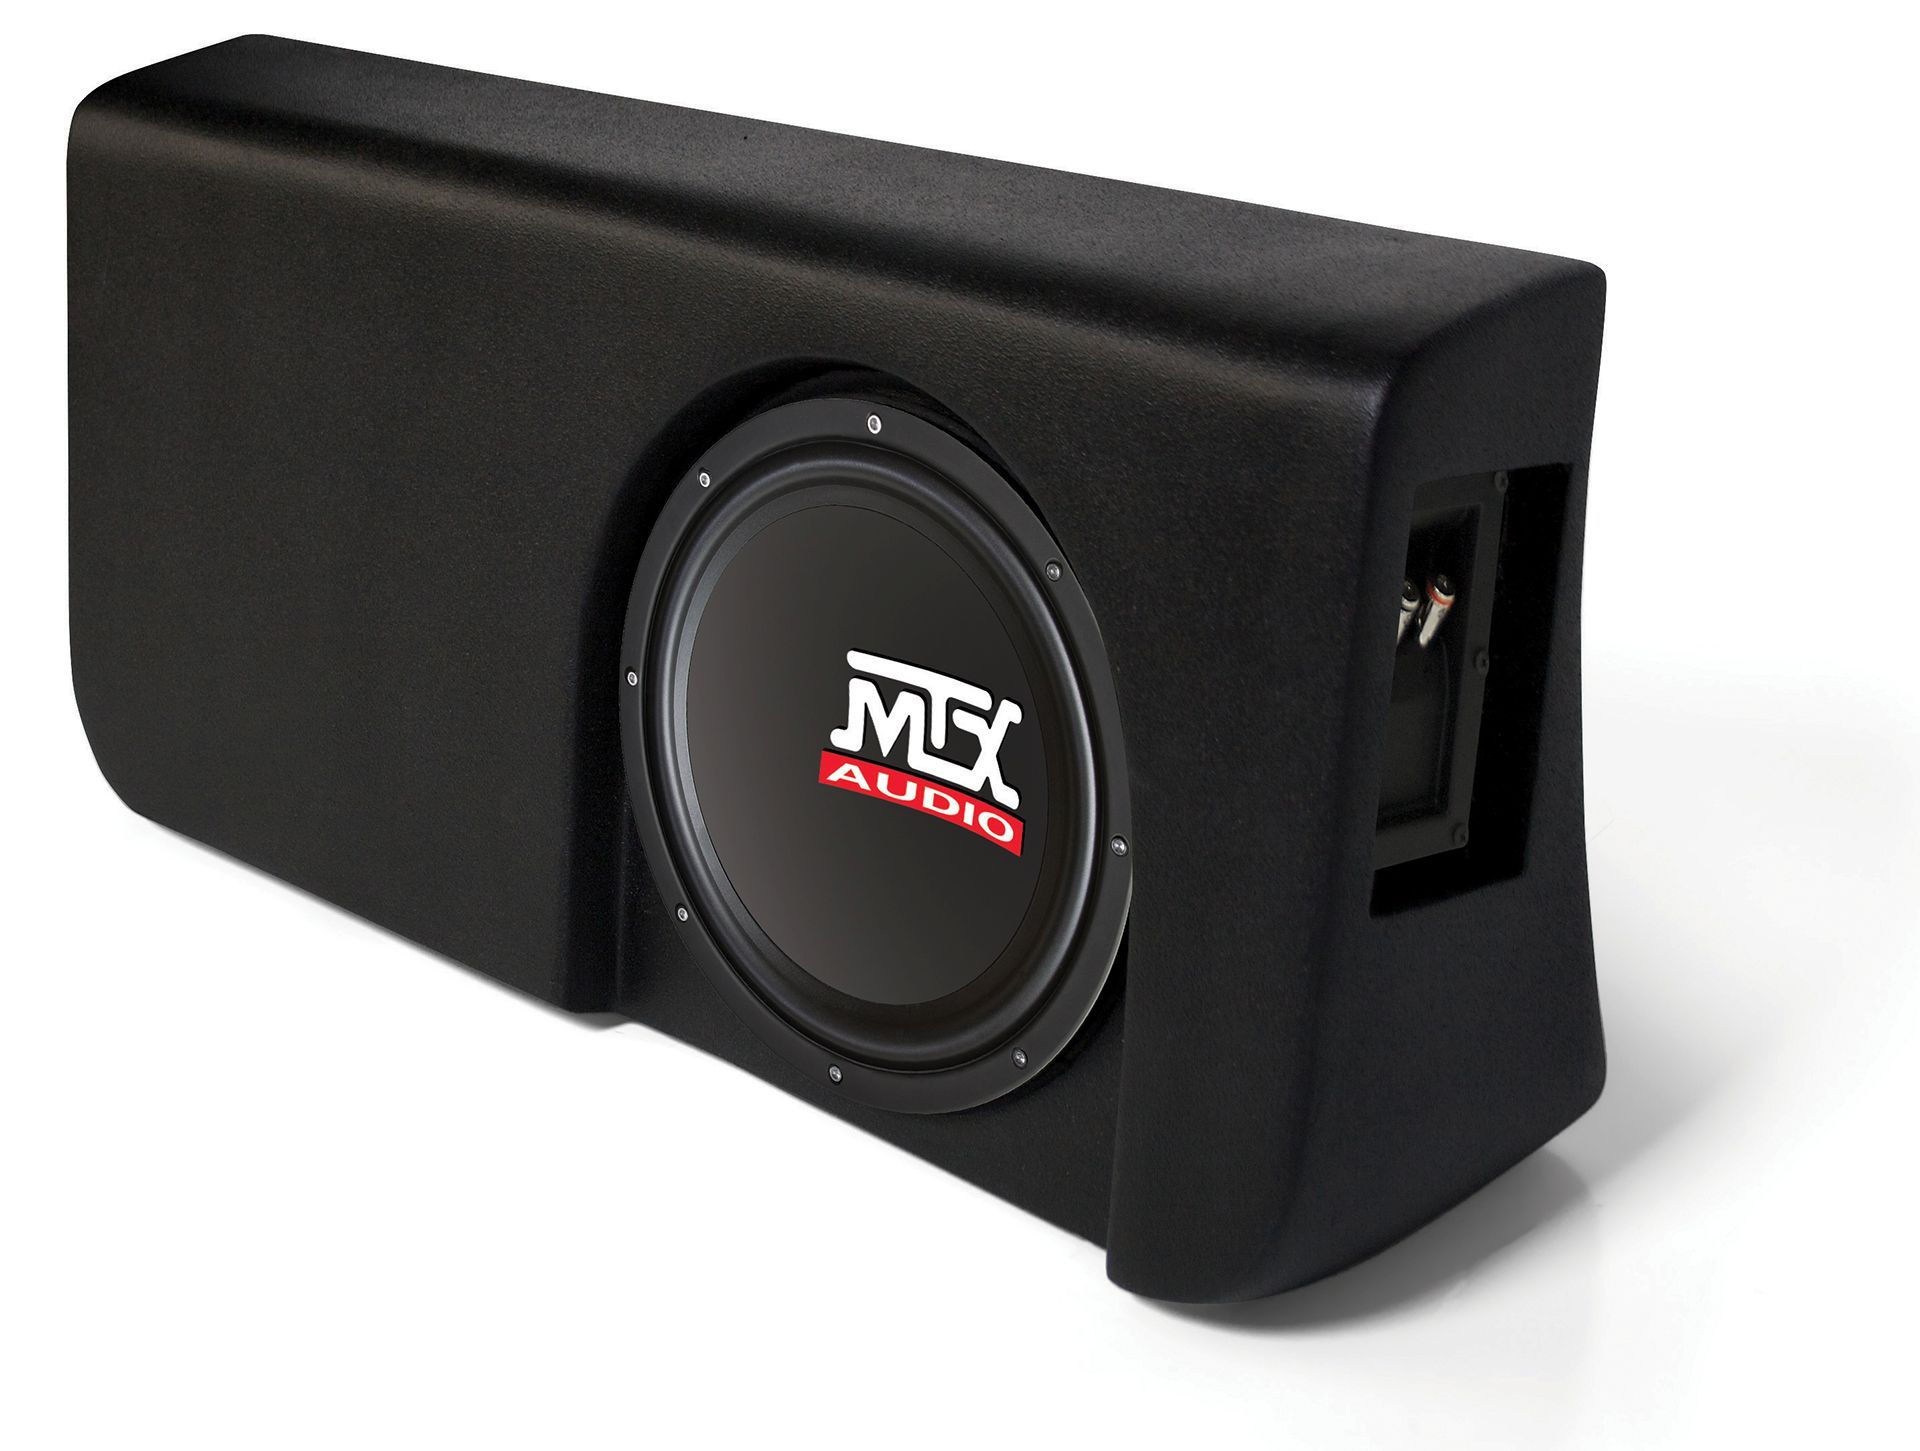 ford f-150 supercrew cab 2009-2015 thunderform custom subwoofer enclosure |  mtx audio - serious about sound�